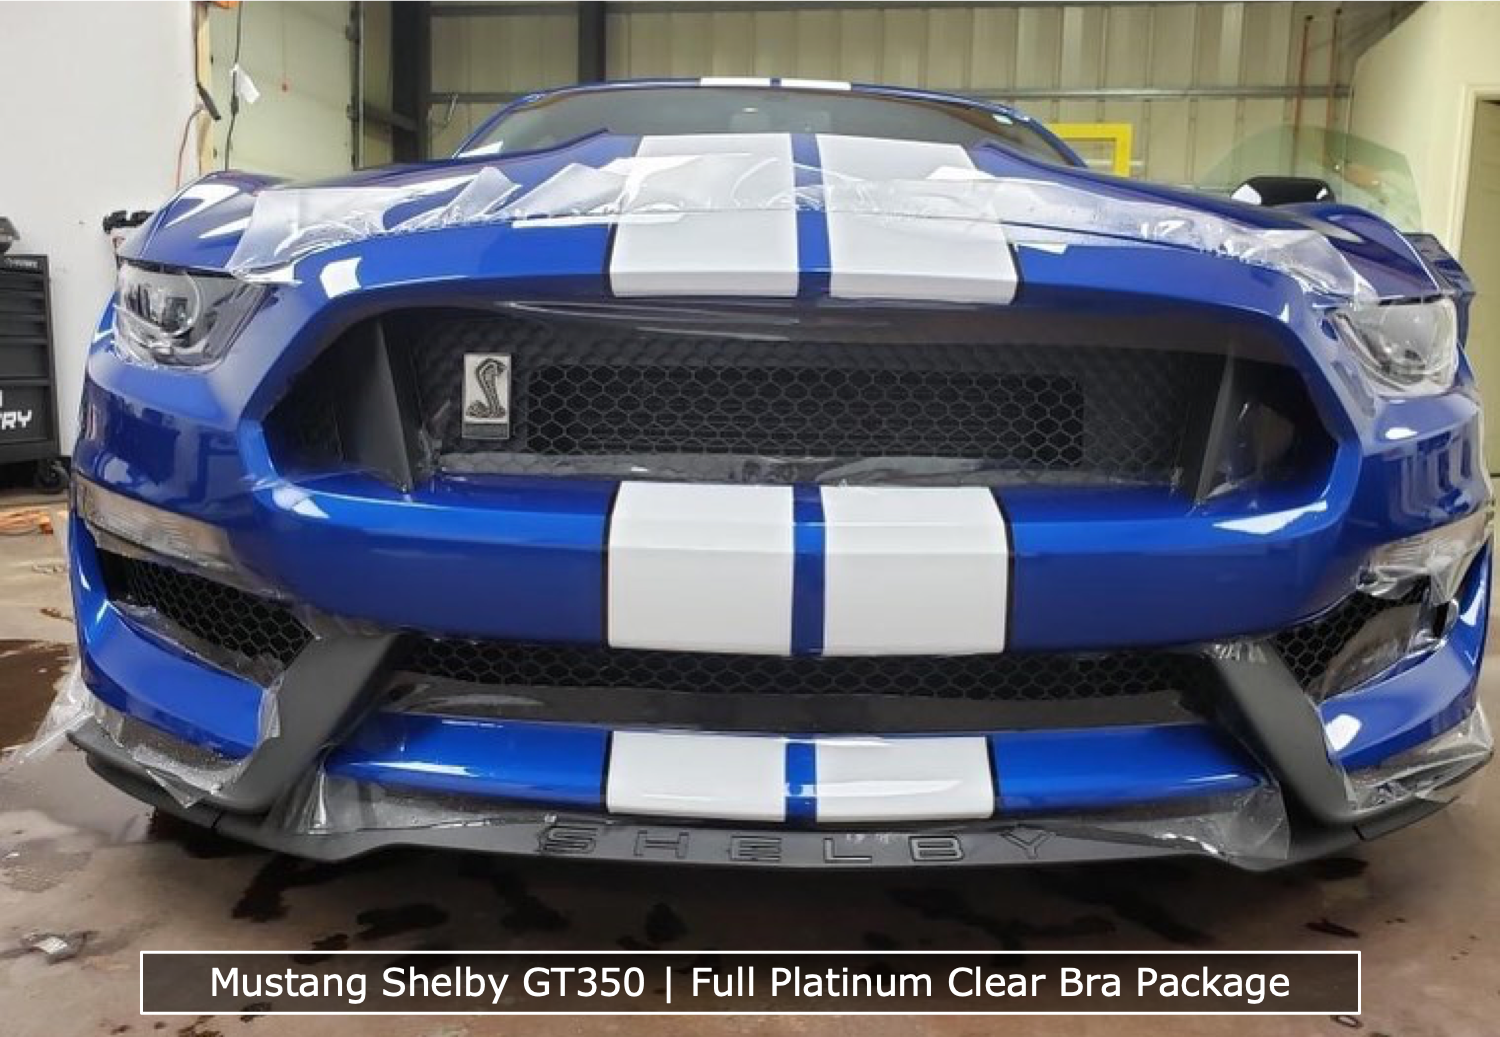 Clear Bra Being Installed On Shelby Mustang